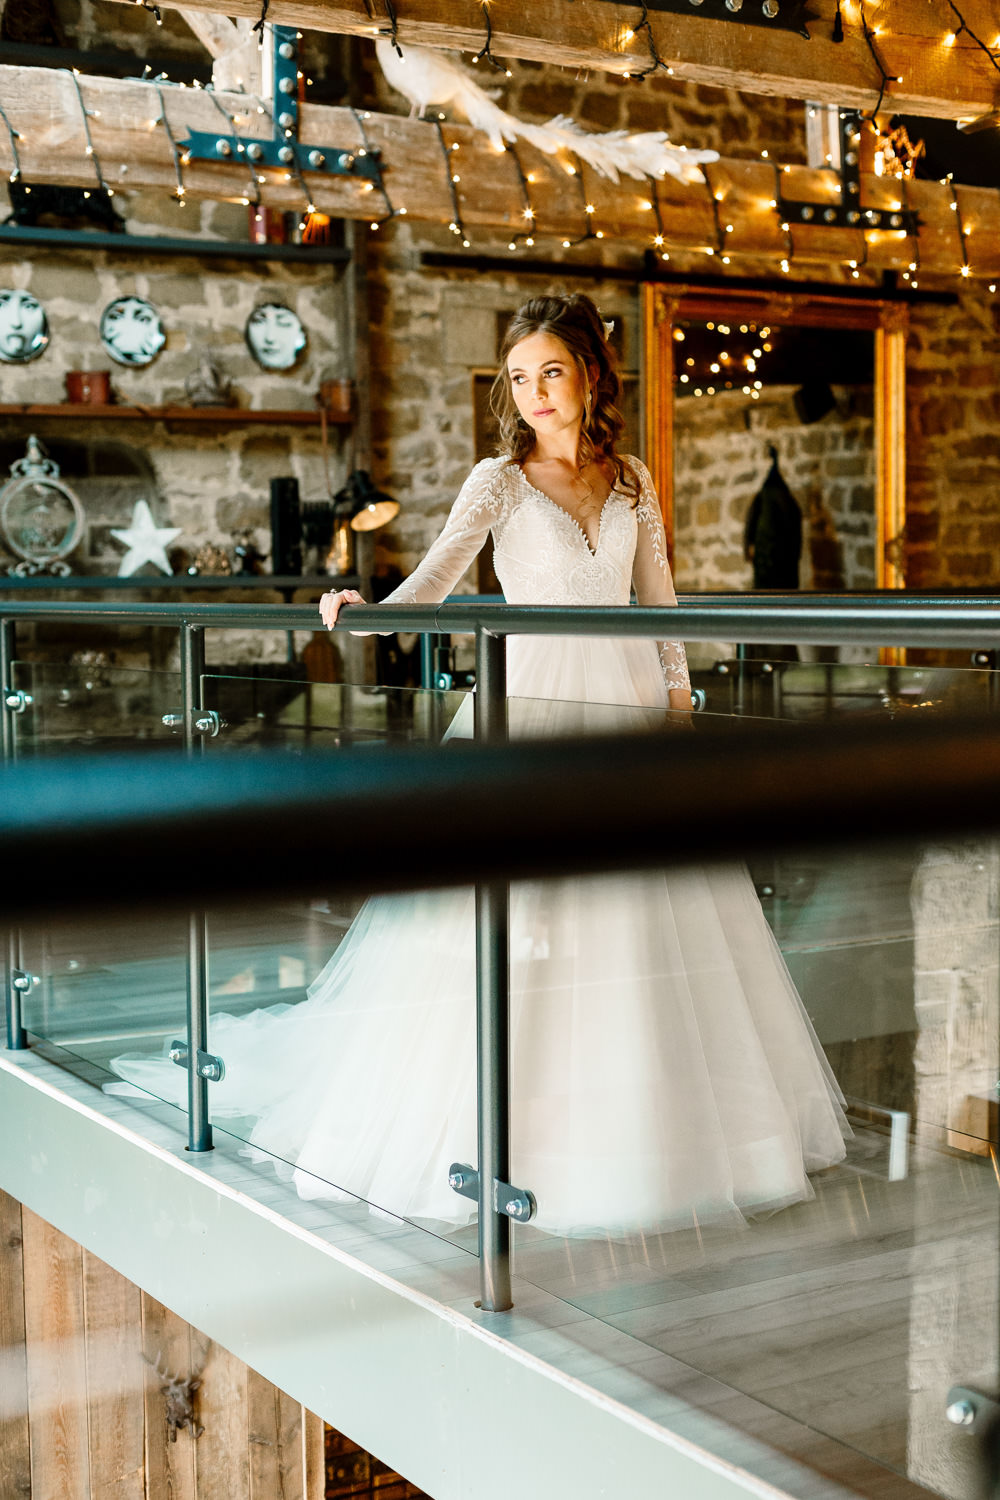 Dress Gown Bride Bridal Lace Buttons Sheer Tulle Skirt Princess Wharfedale Grange Wedding Hayley Baxter Photography